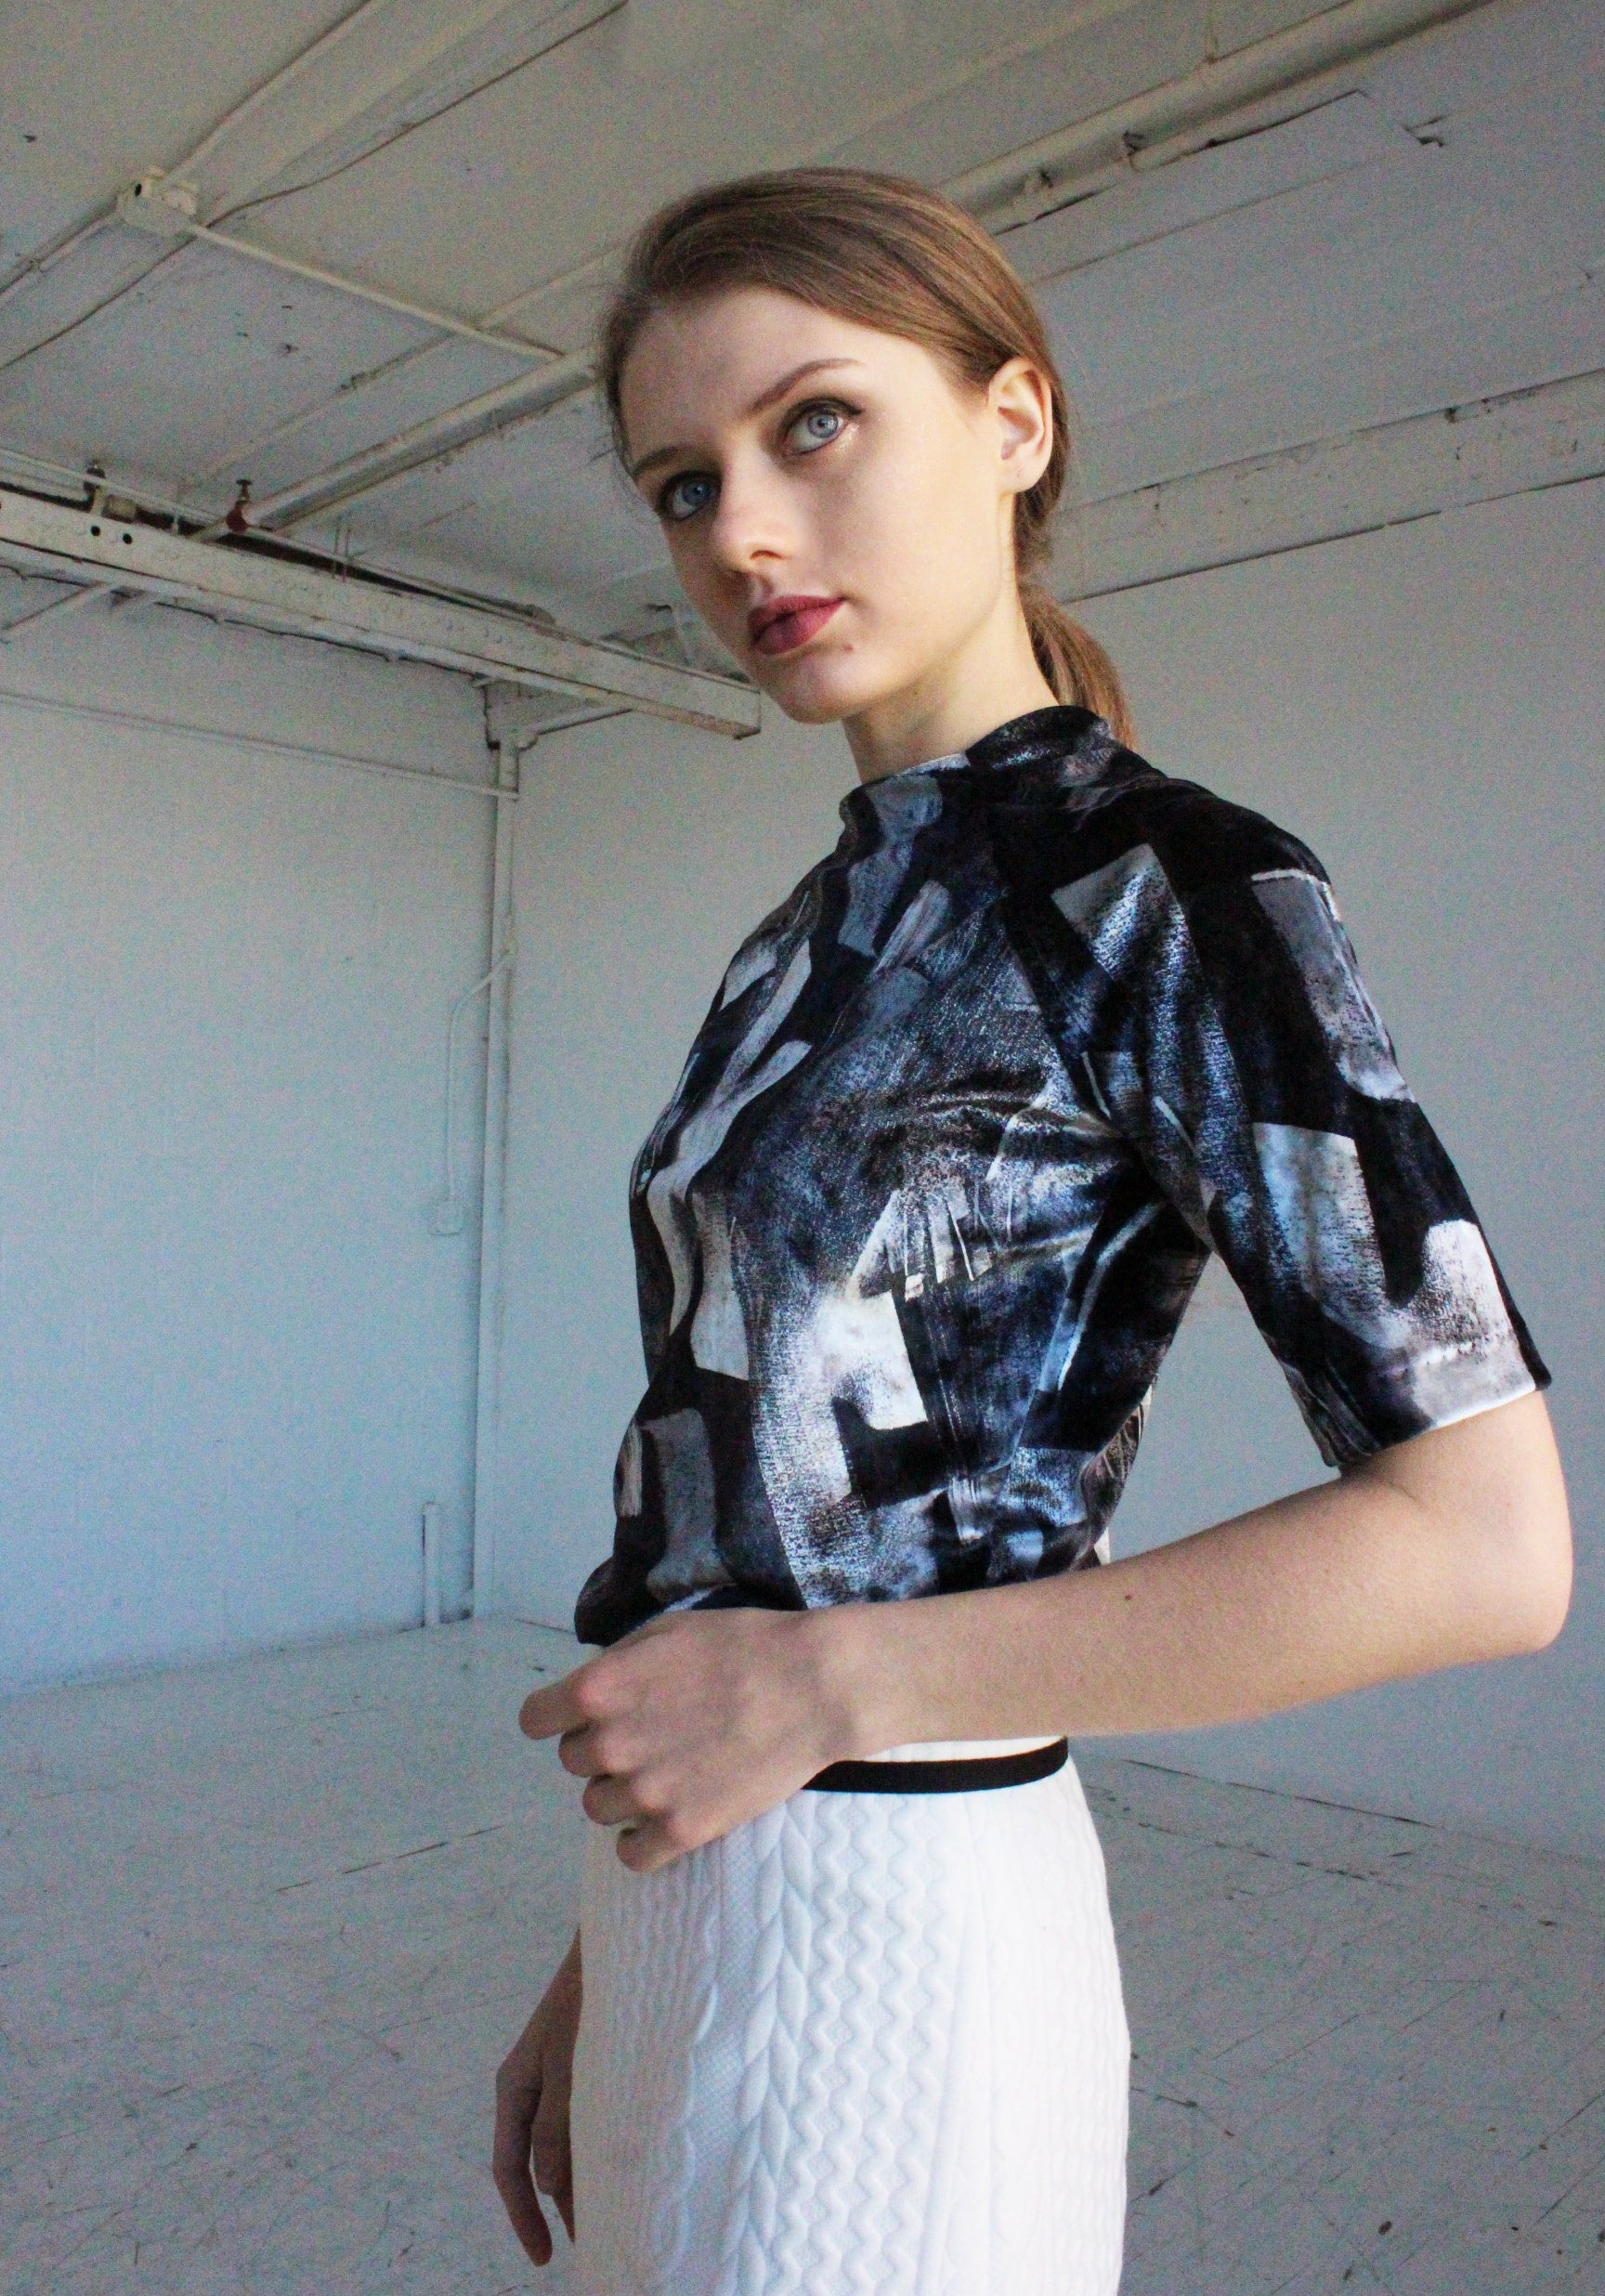 Ying Cai _ AW 21 Look 8 - 6